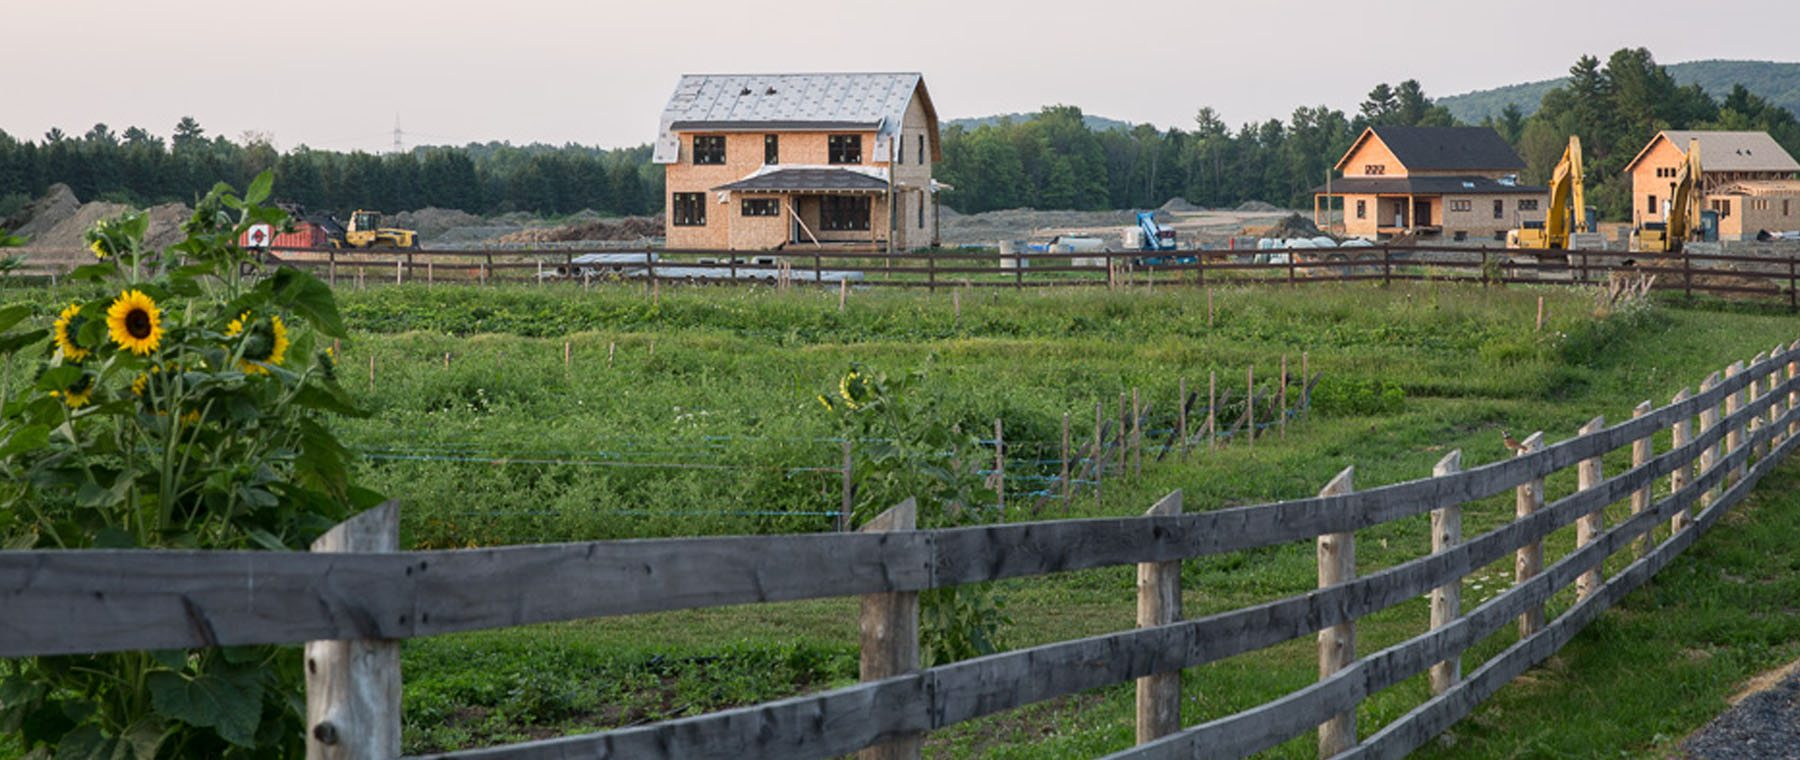 Hendrick Farm Offers a New Model For Country Living